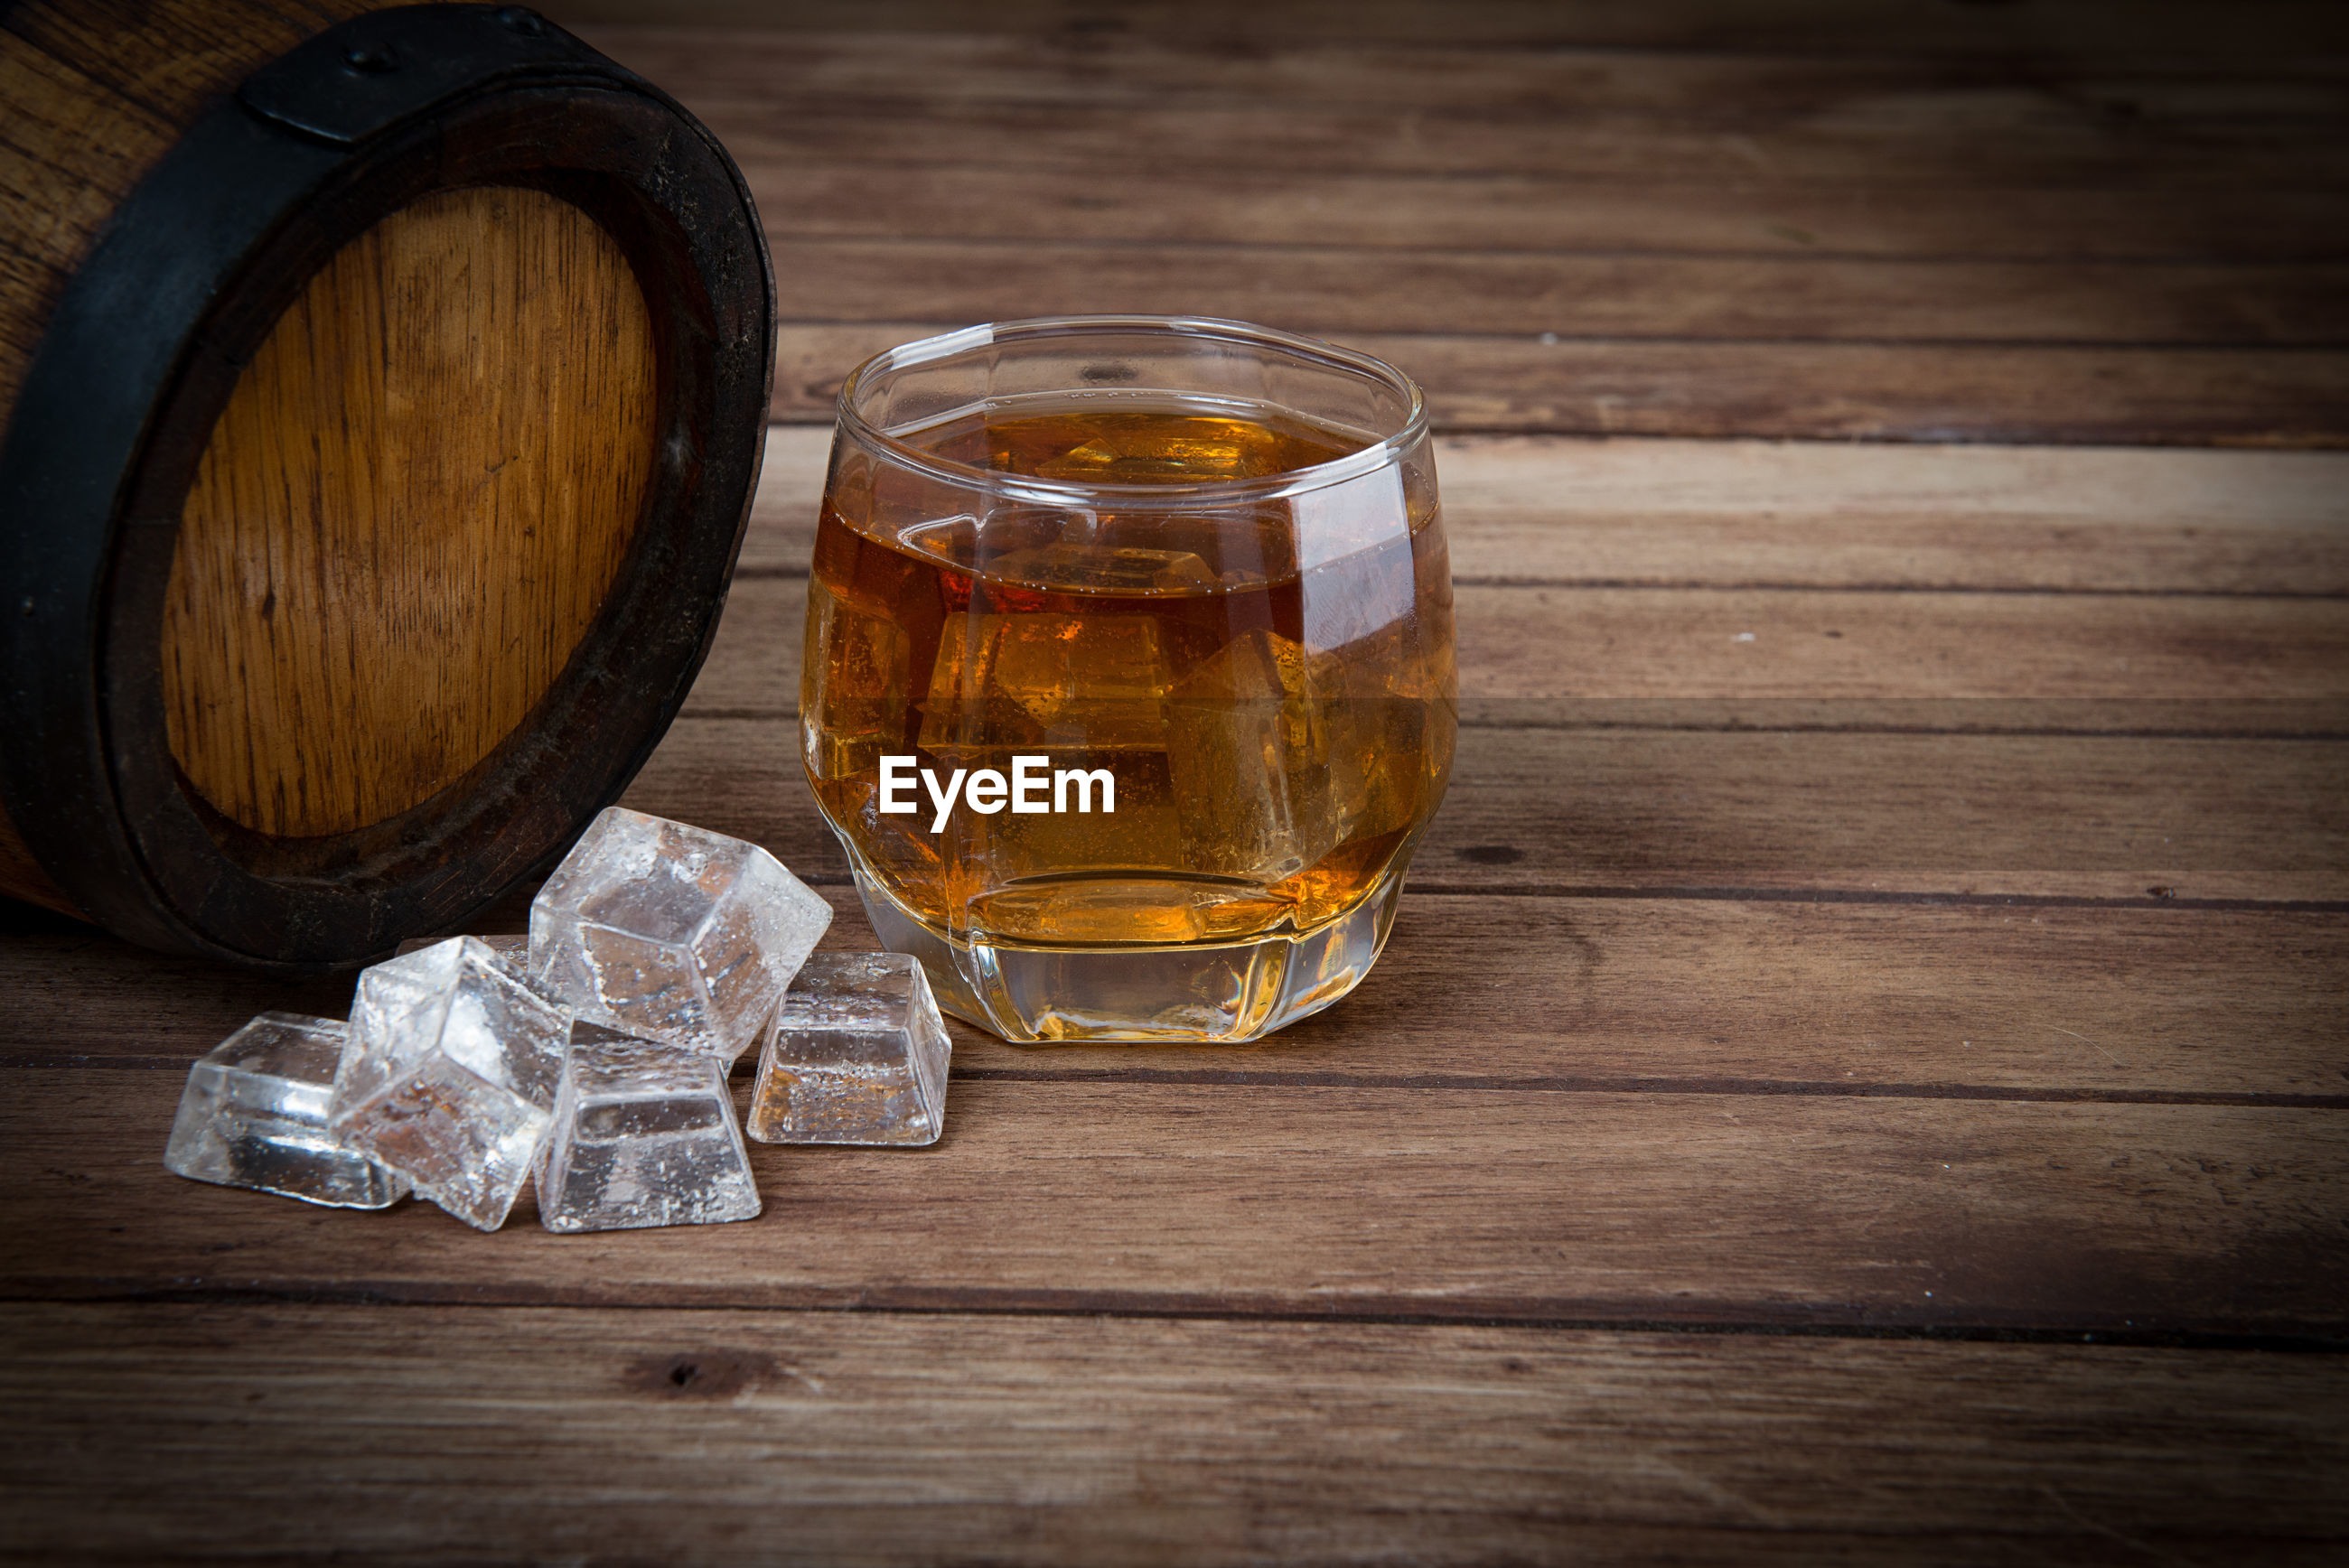 Close-up of ice cubes and whiskey in glass on table